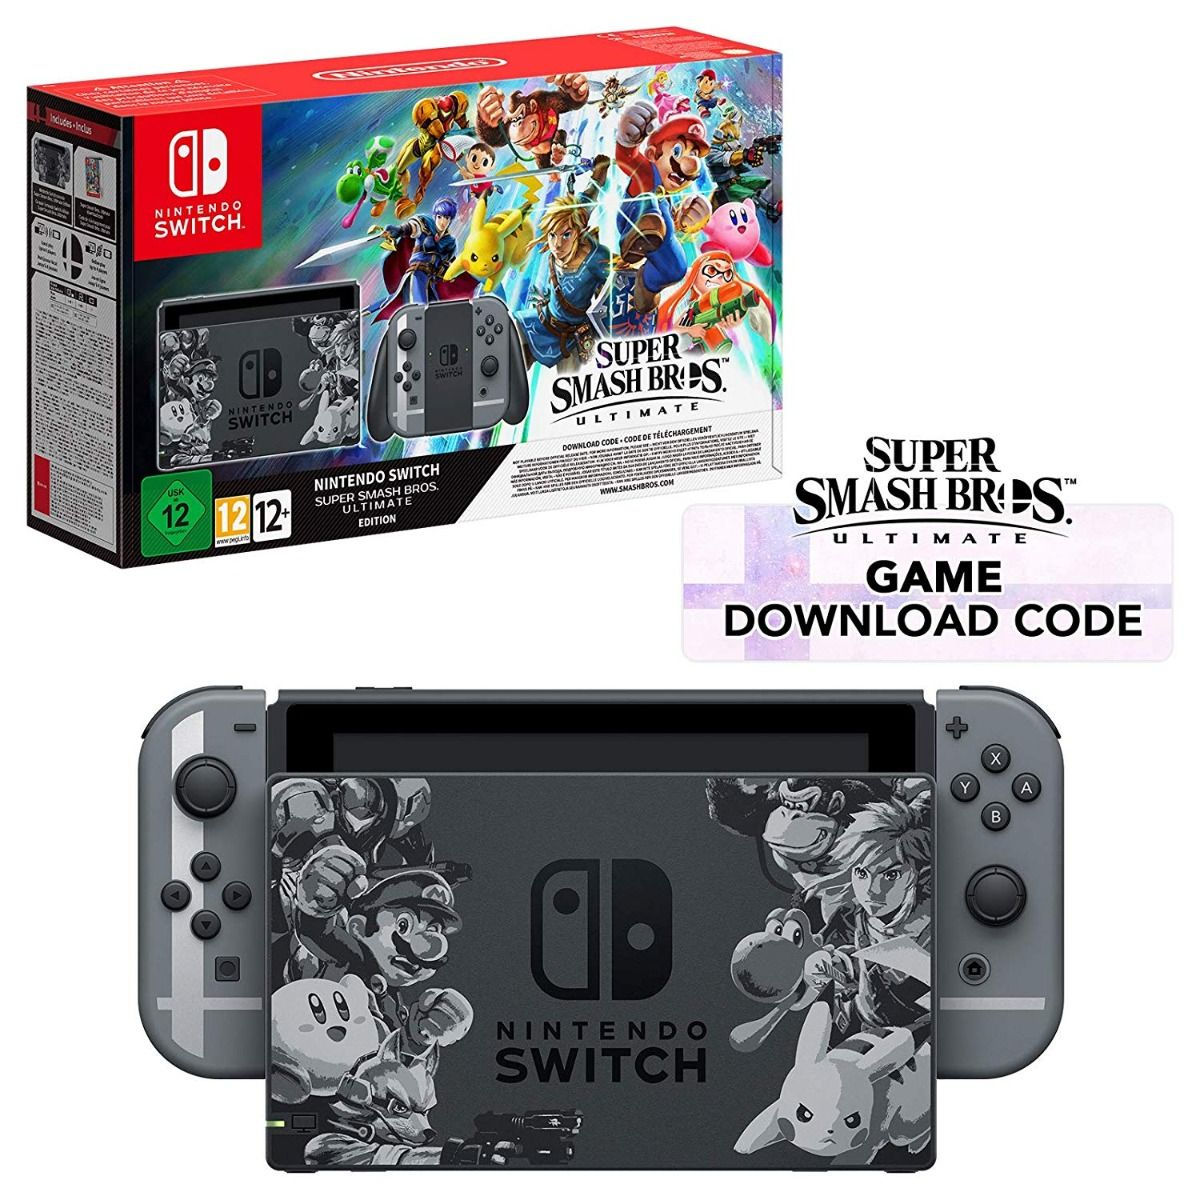 Nintendo Switch Console with Super Smash Bros. Ultimate Edition